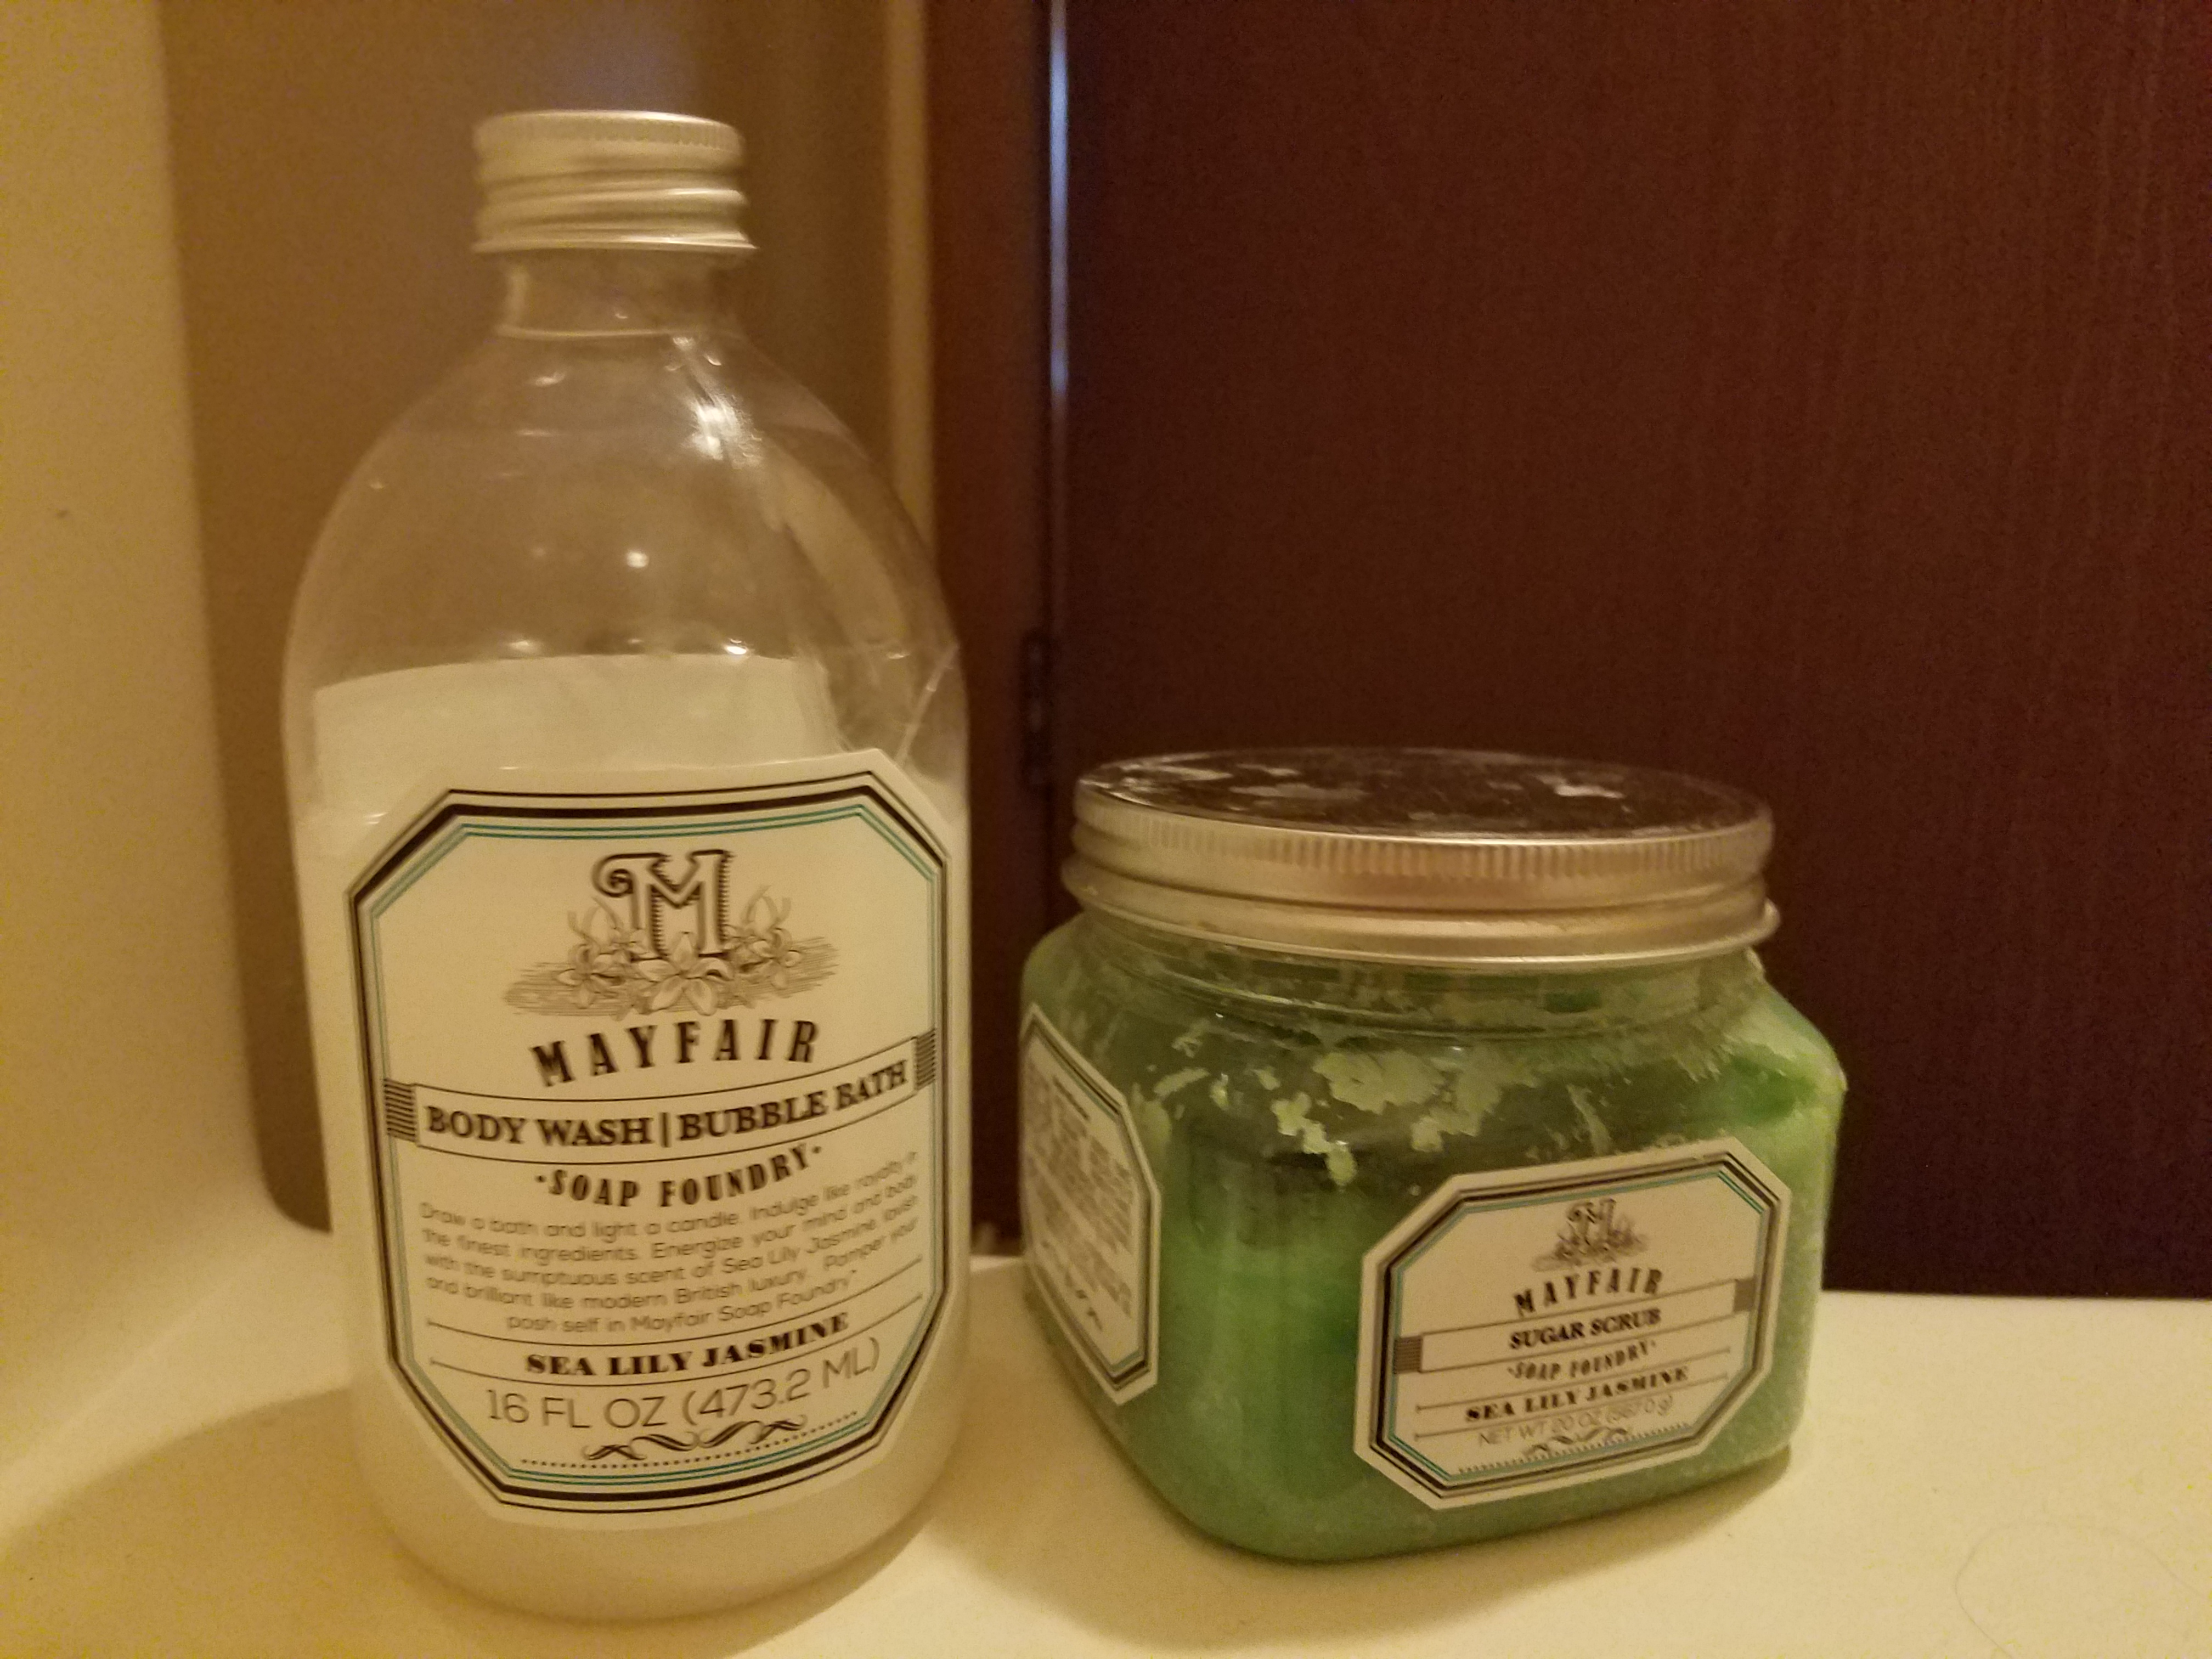 A photo of bath soaps and supplies.